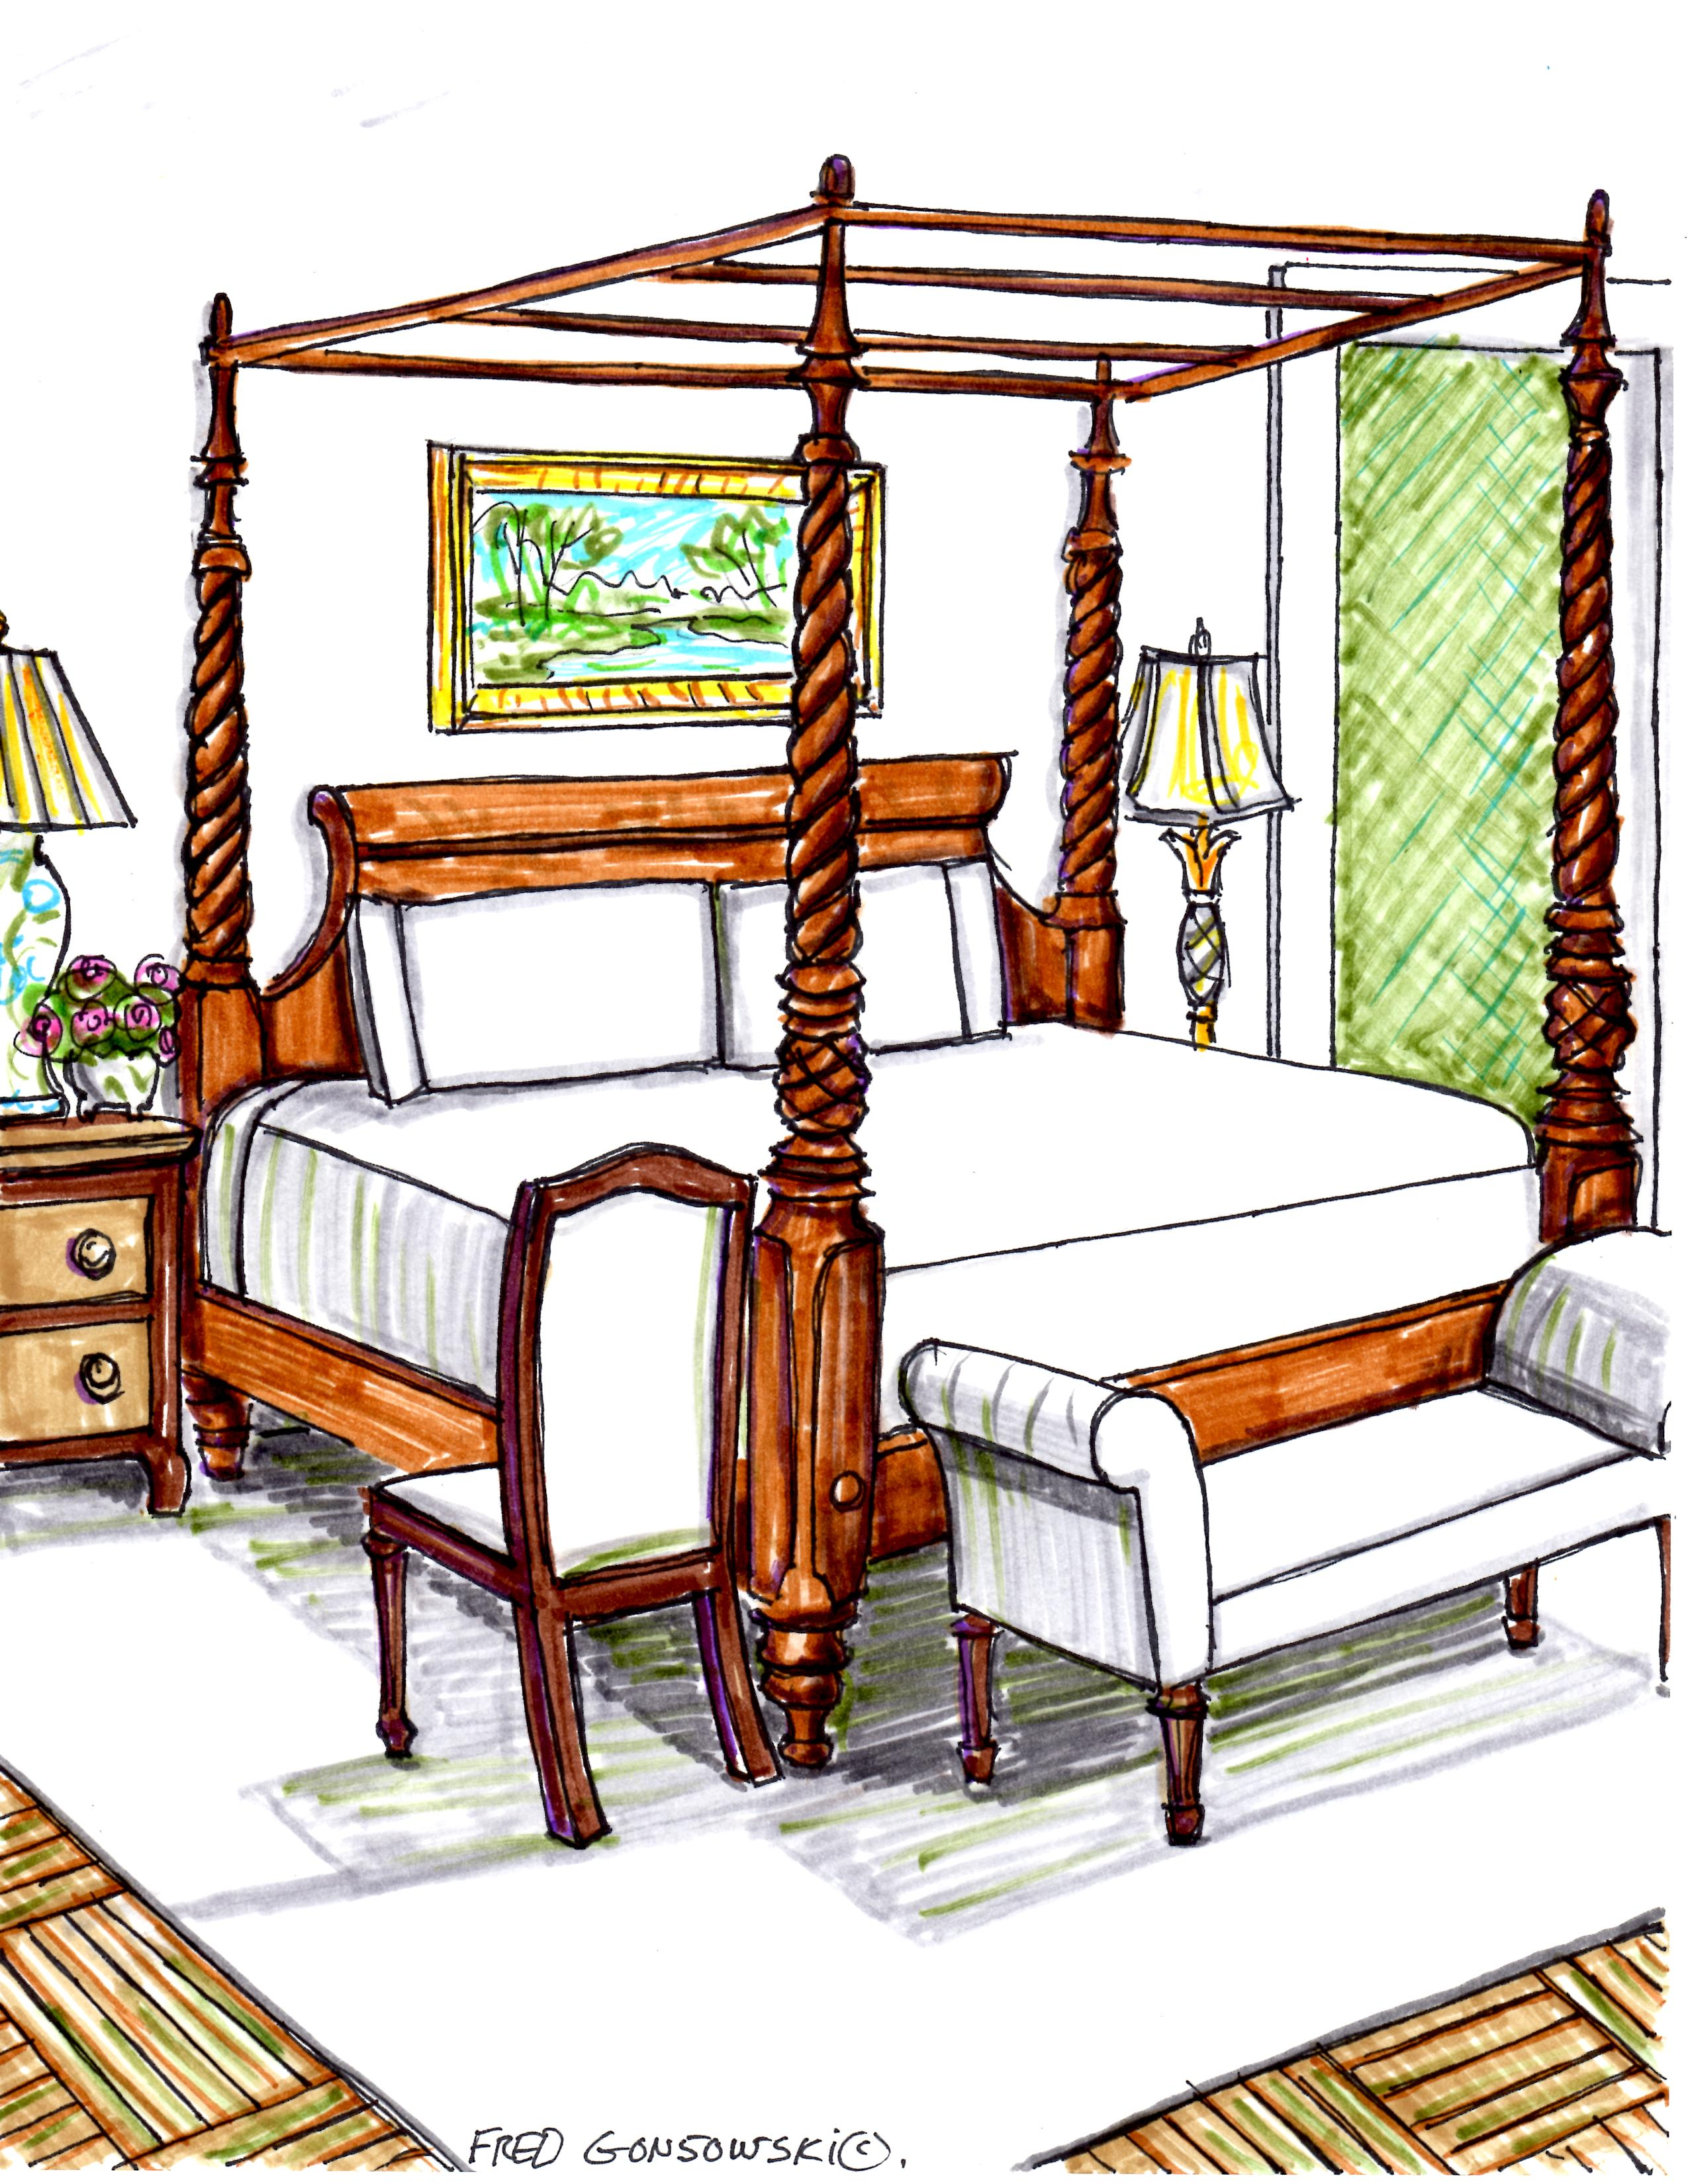 arranging bedroom furniture. Sixteen possible ways of arranging bedroom furniture in a large  Arranging Furniture 15 foot wide by 25 long Bedroom Fred